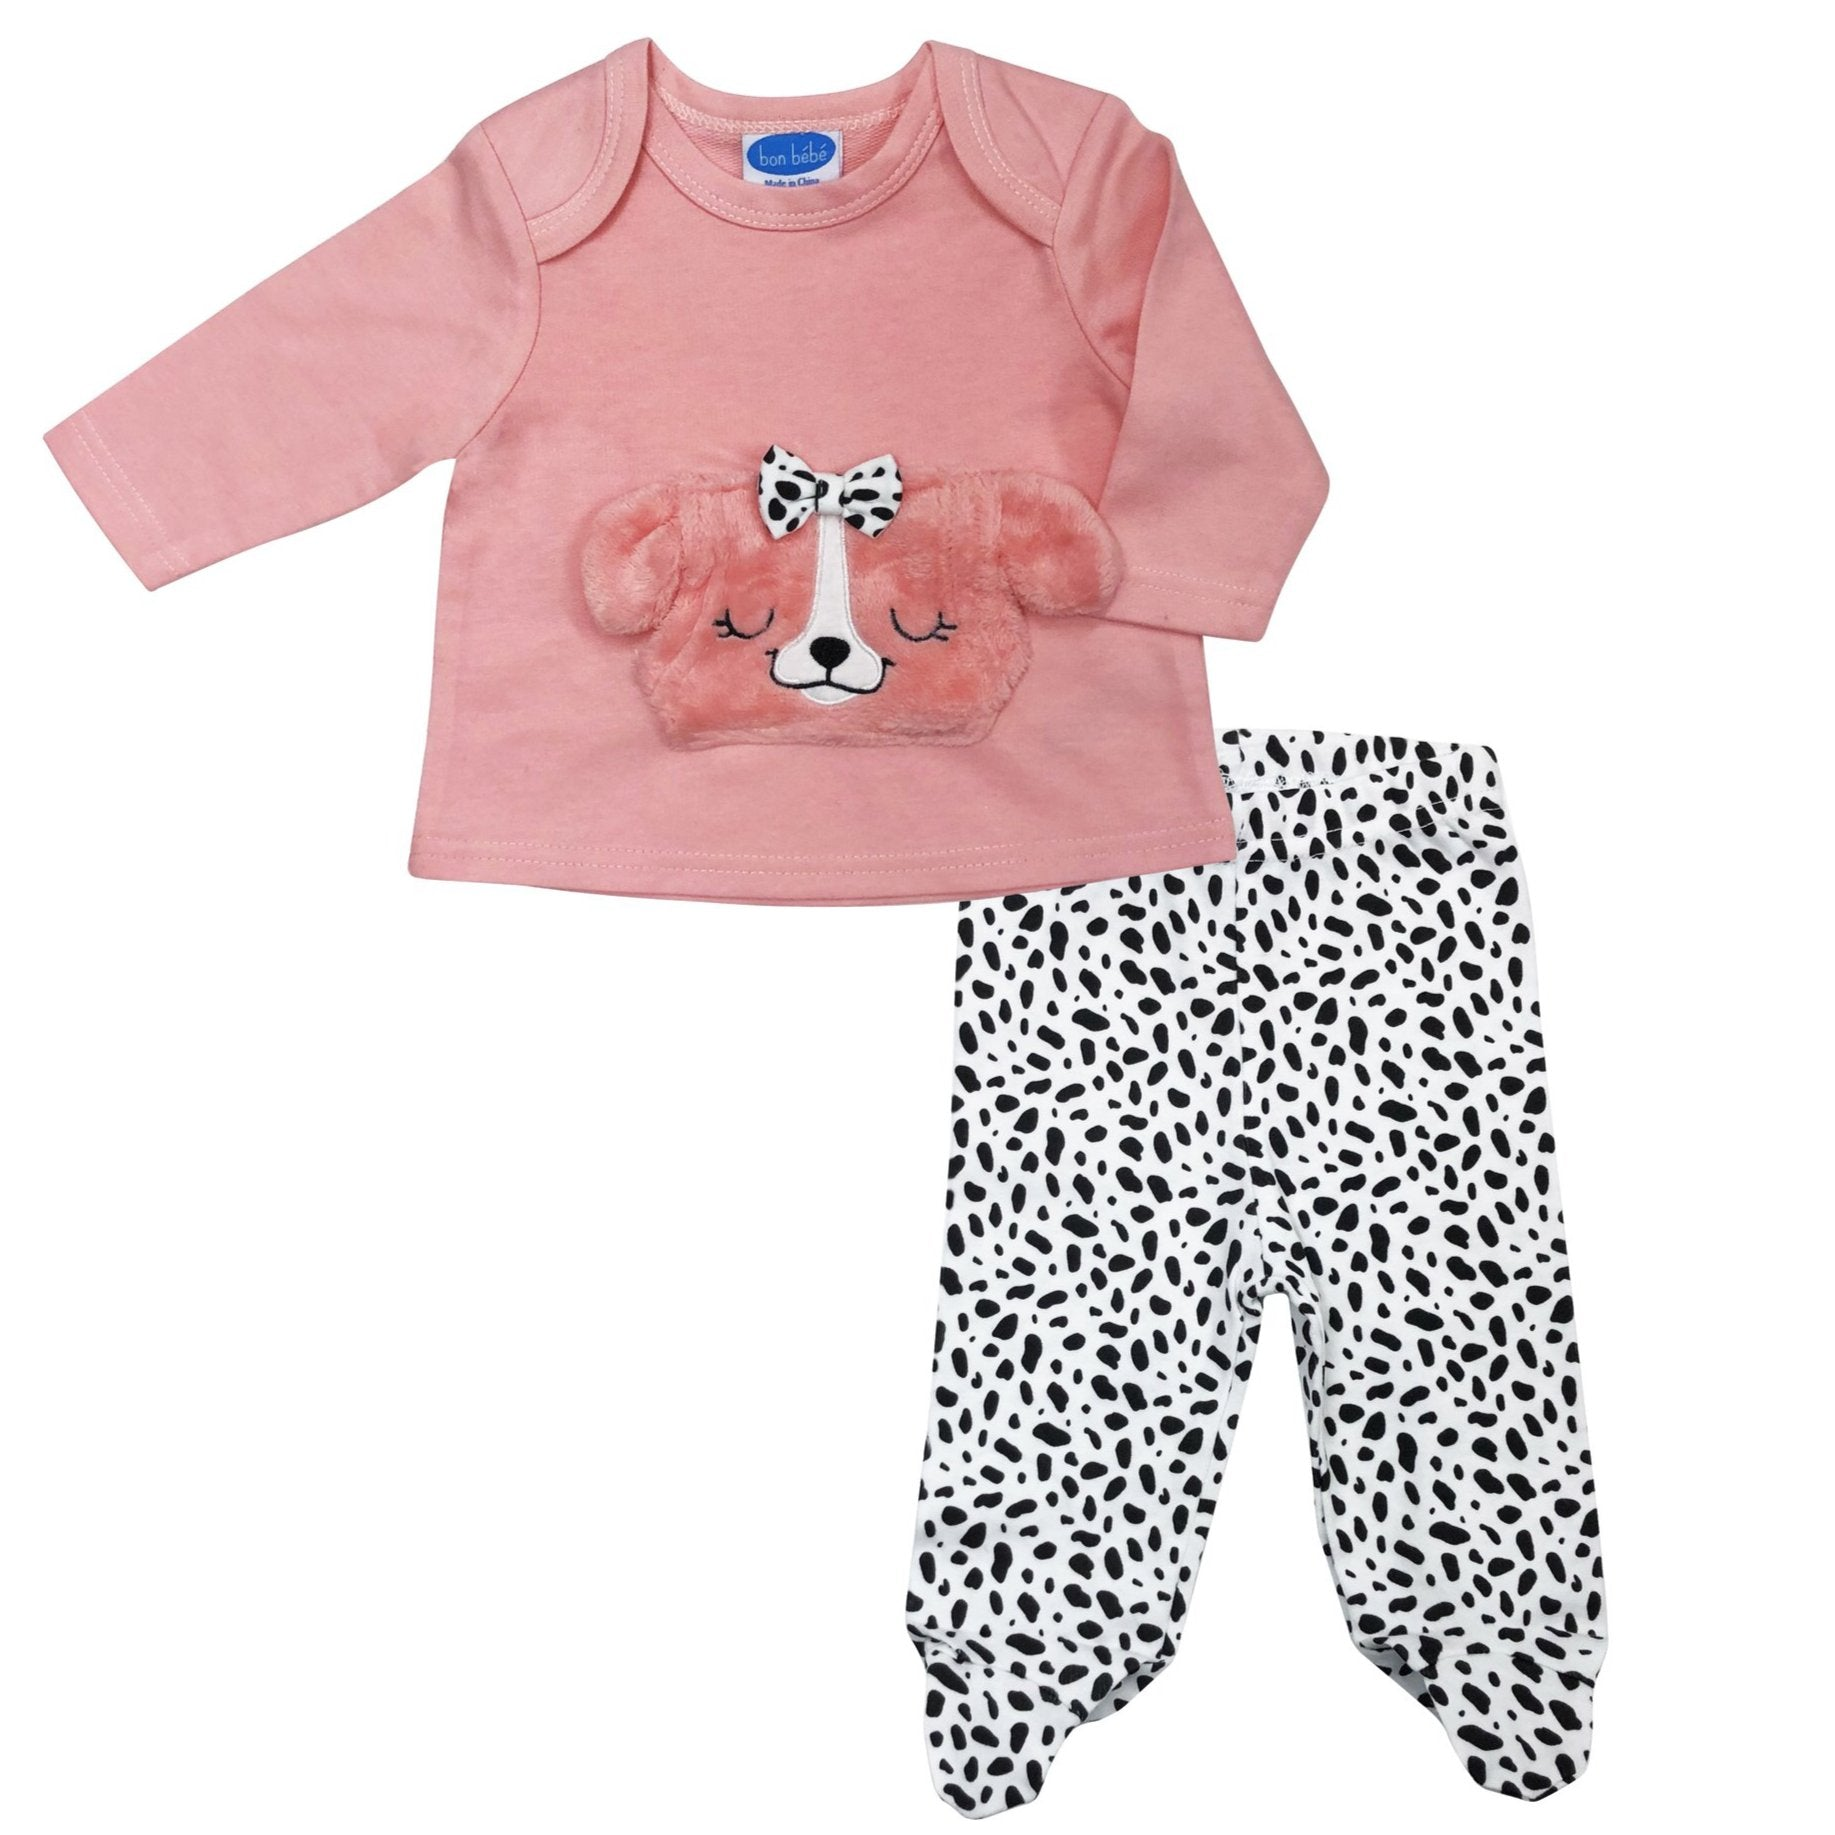 BON BEBE Infant Girl 2-Piece Set